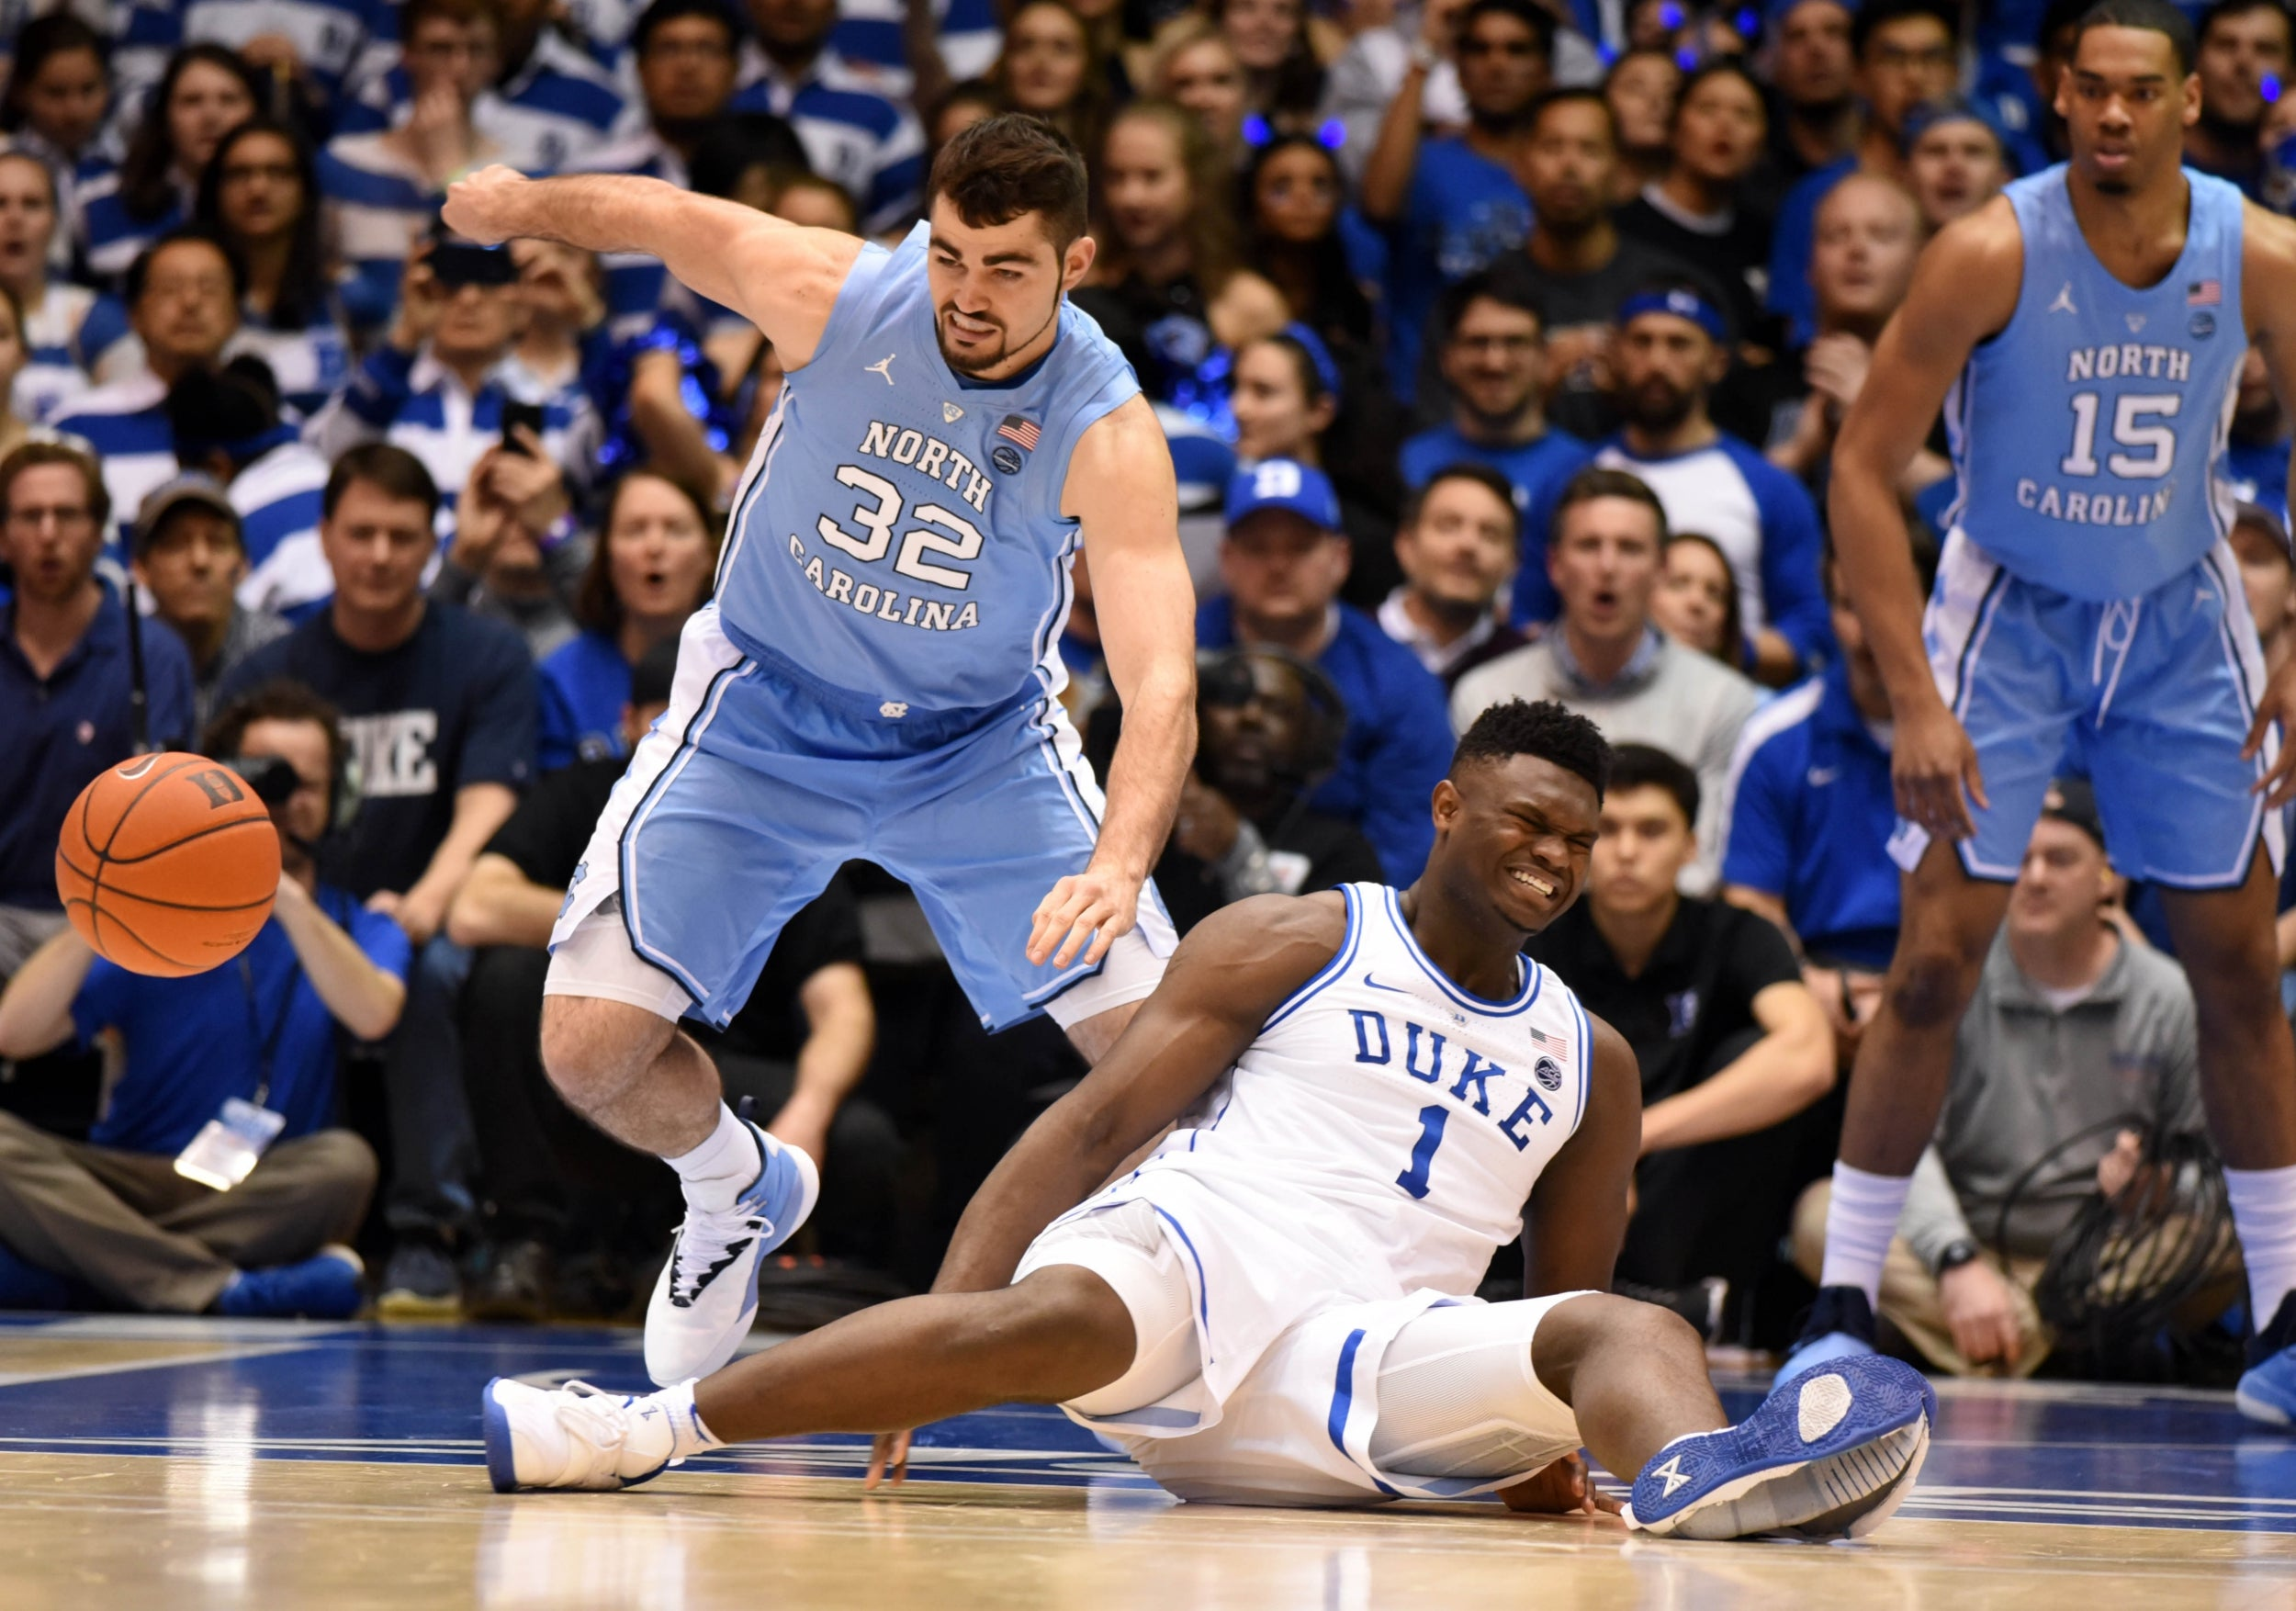 b2fdfcf9fb3 Nike stock market value plunges by $1.1bn after basketball star Zion  Williamson's shoe breaks